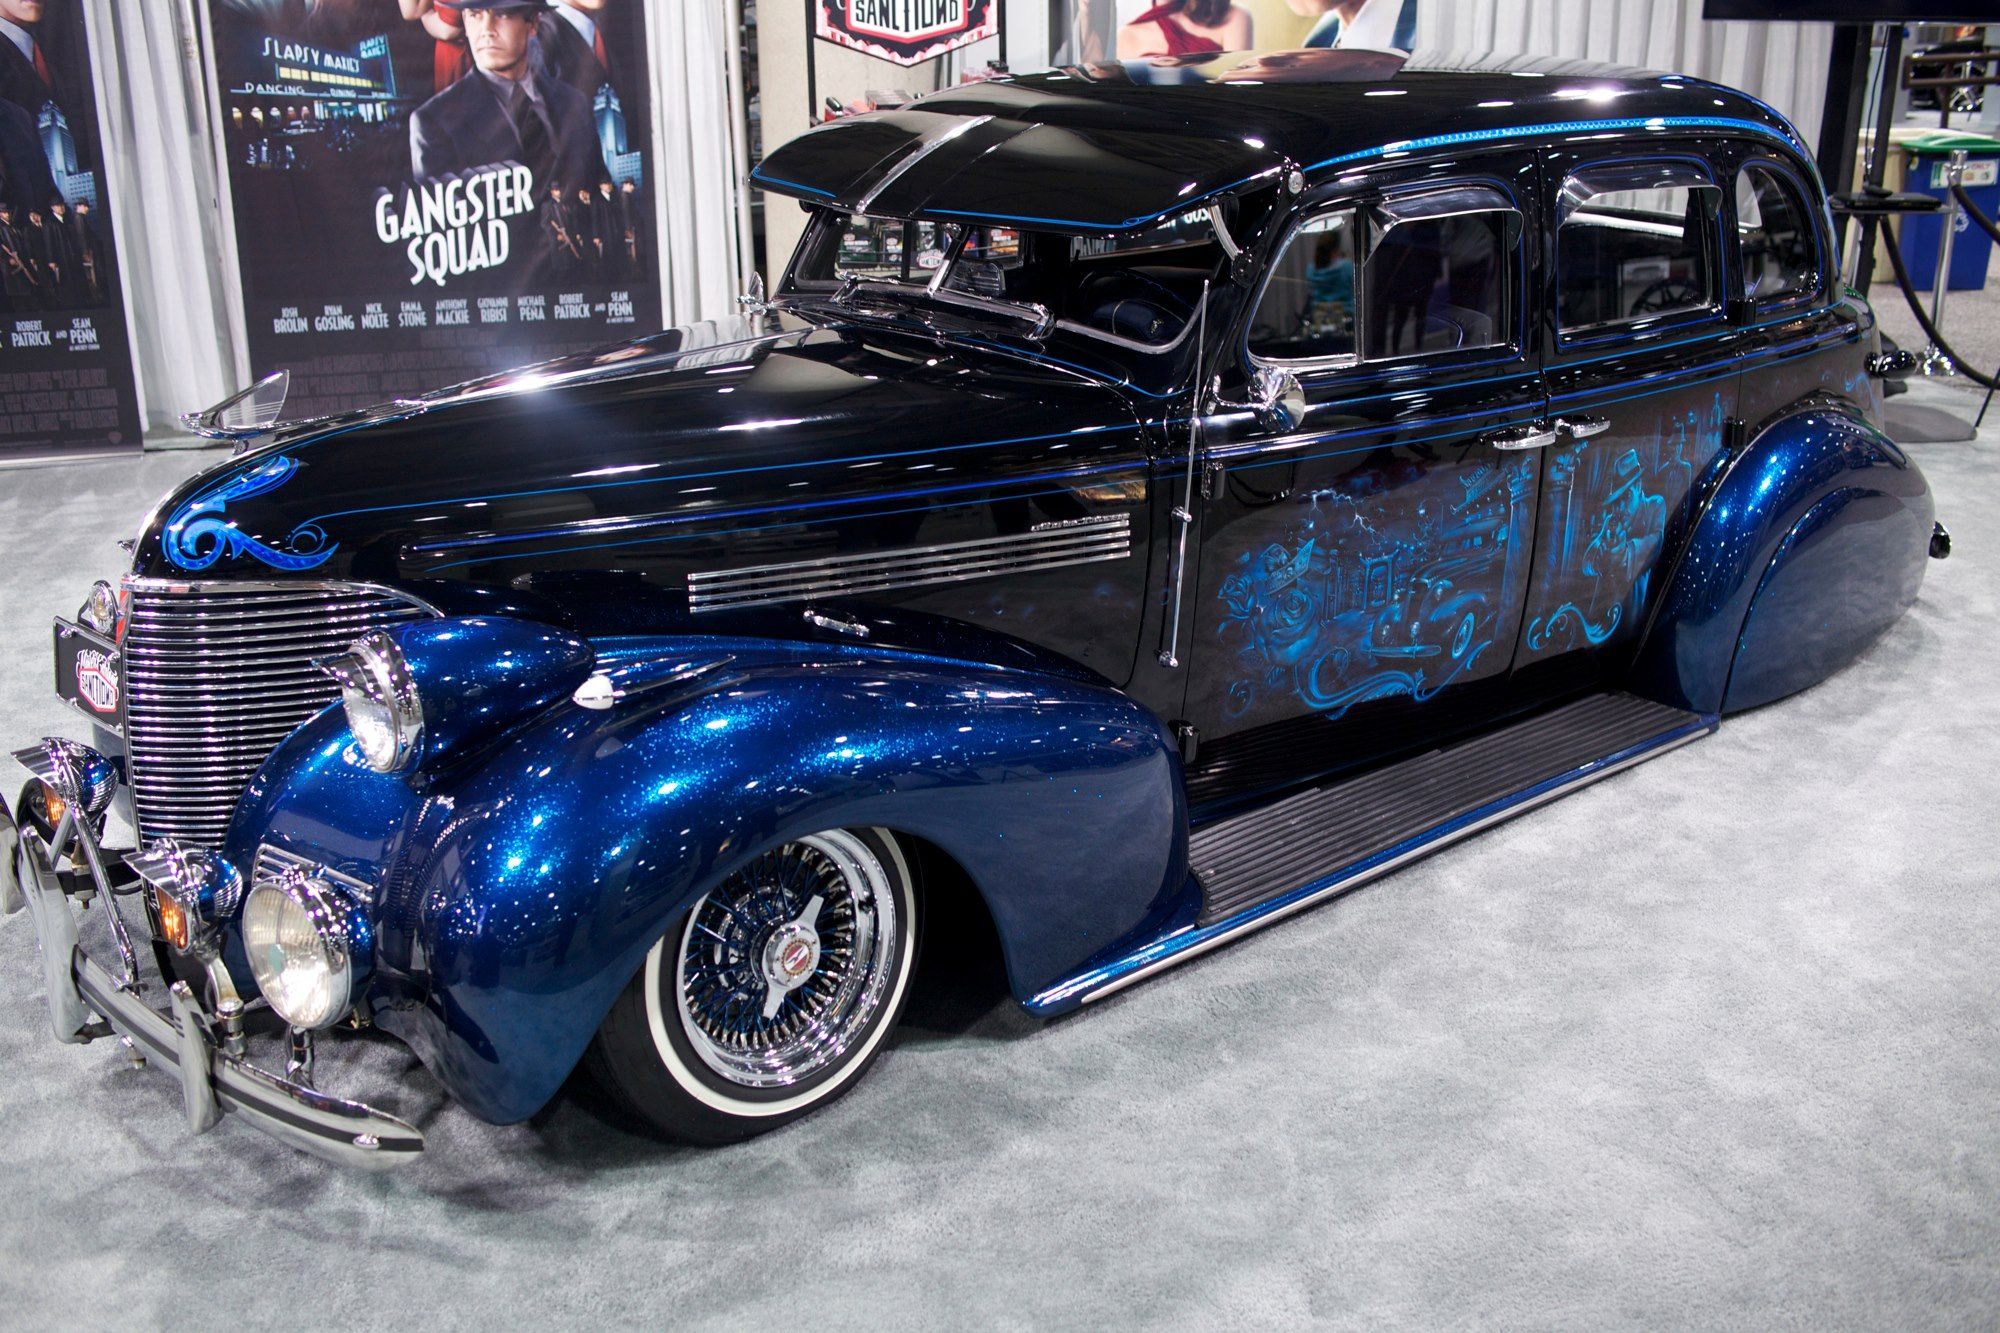 Los Angeles Car Show Gangster Squad Opens In Theaters